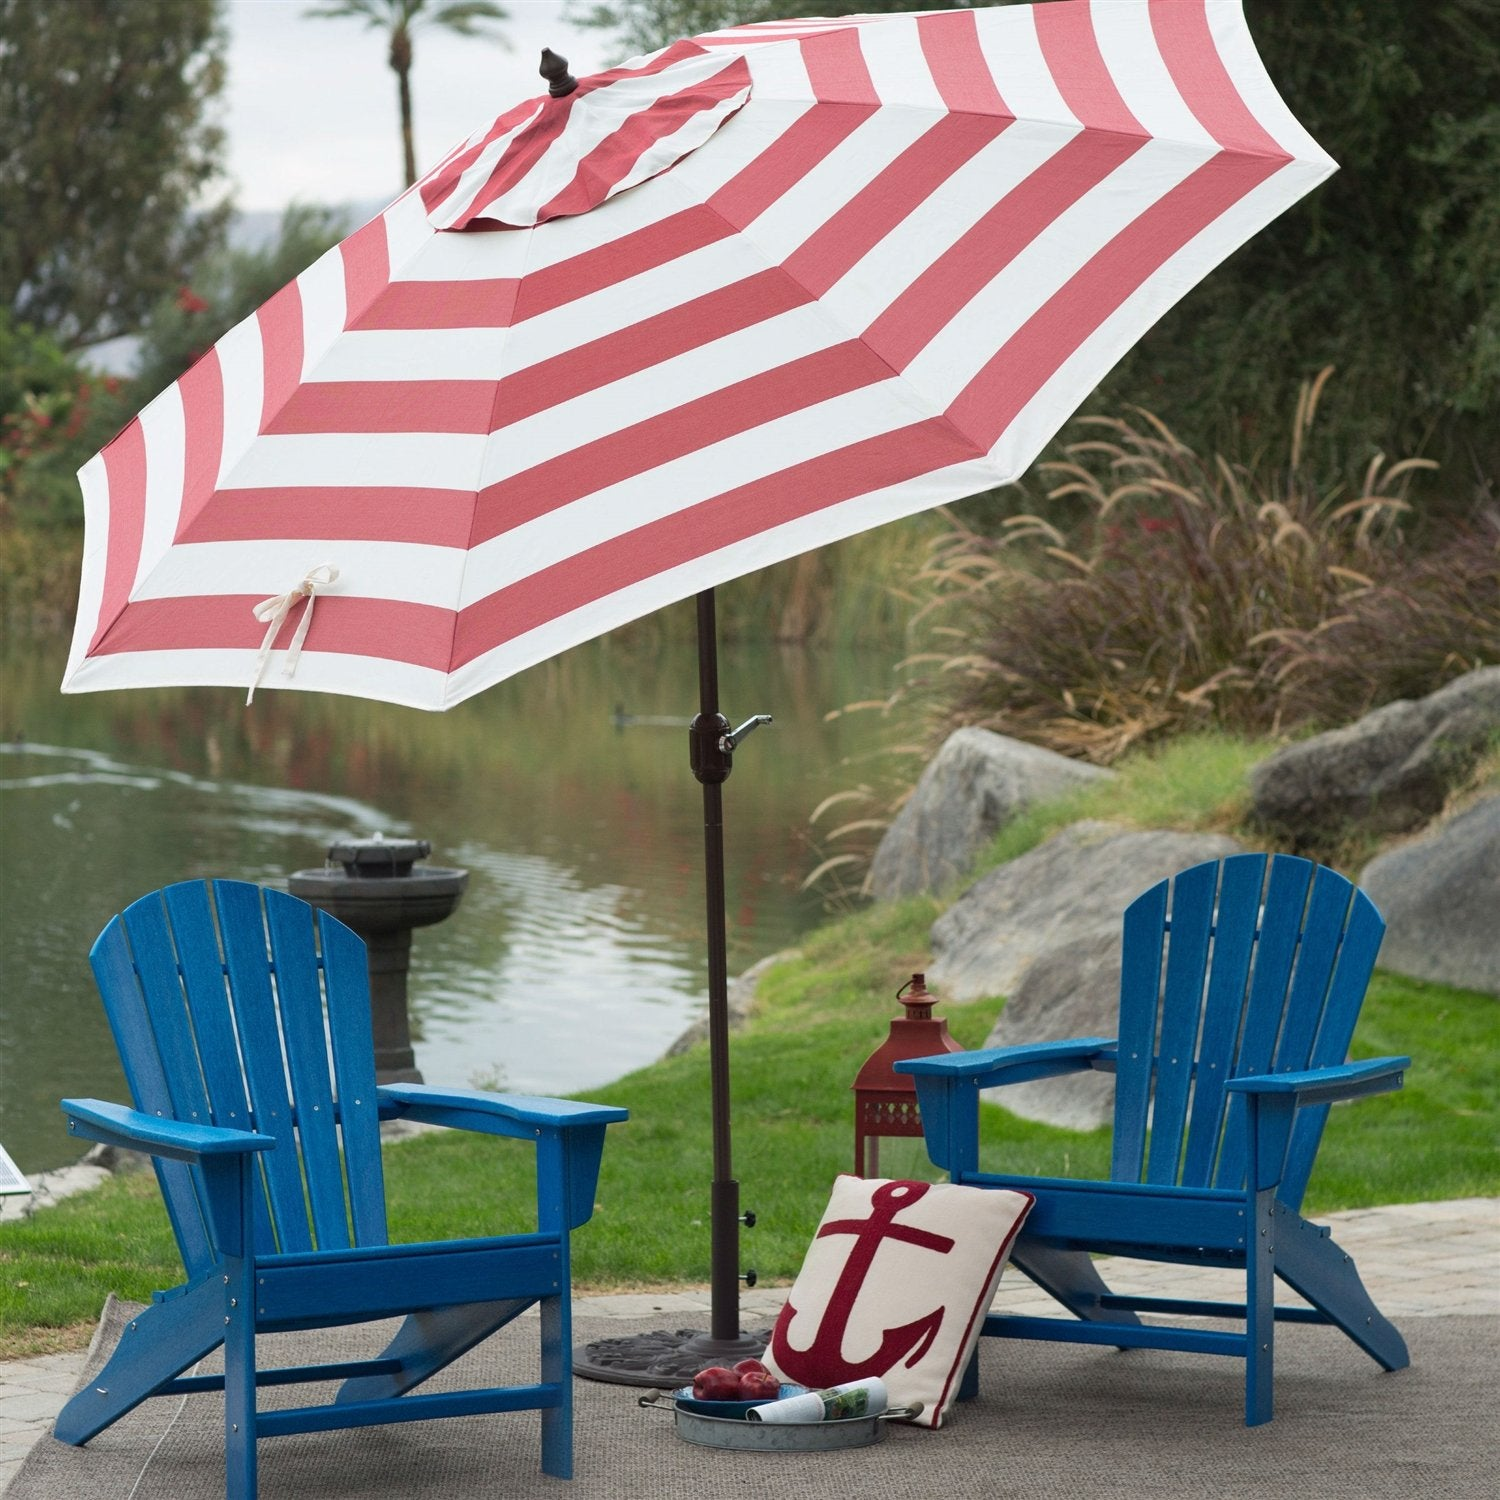 9-Ft Metal Patio Umbrella with Tilt and Crank Lift in Red and White Stripe